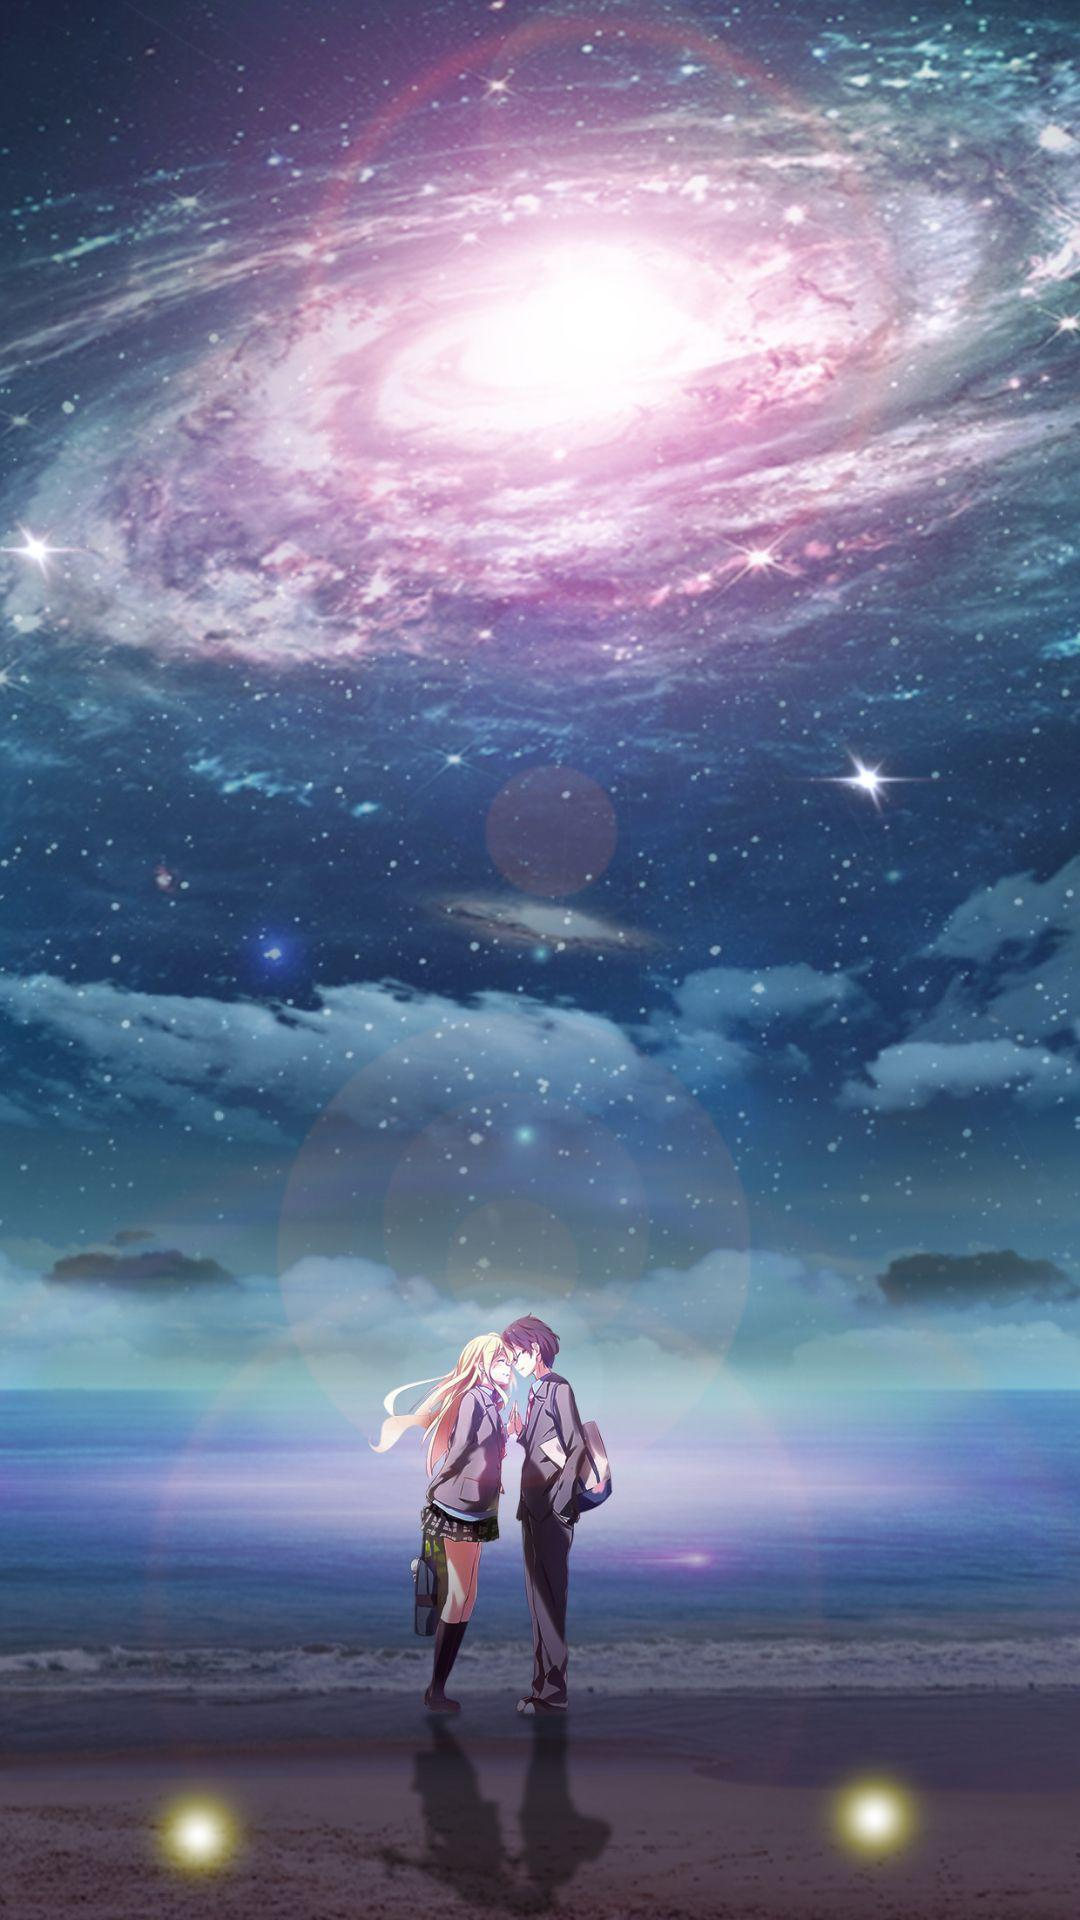 Search free your lie in april wallpapers on zedge and personalize your phone to suit you. Your Lie In April Anime Wallpapers - Wallpaper Cave